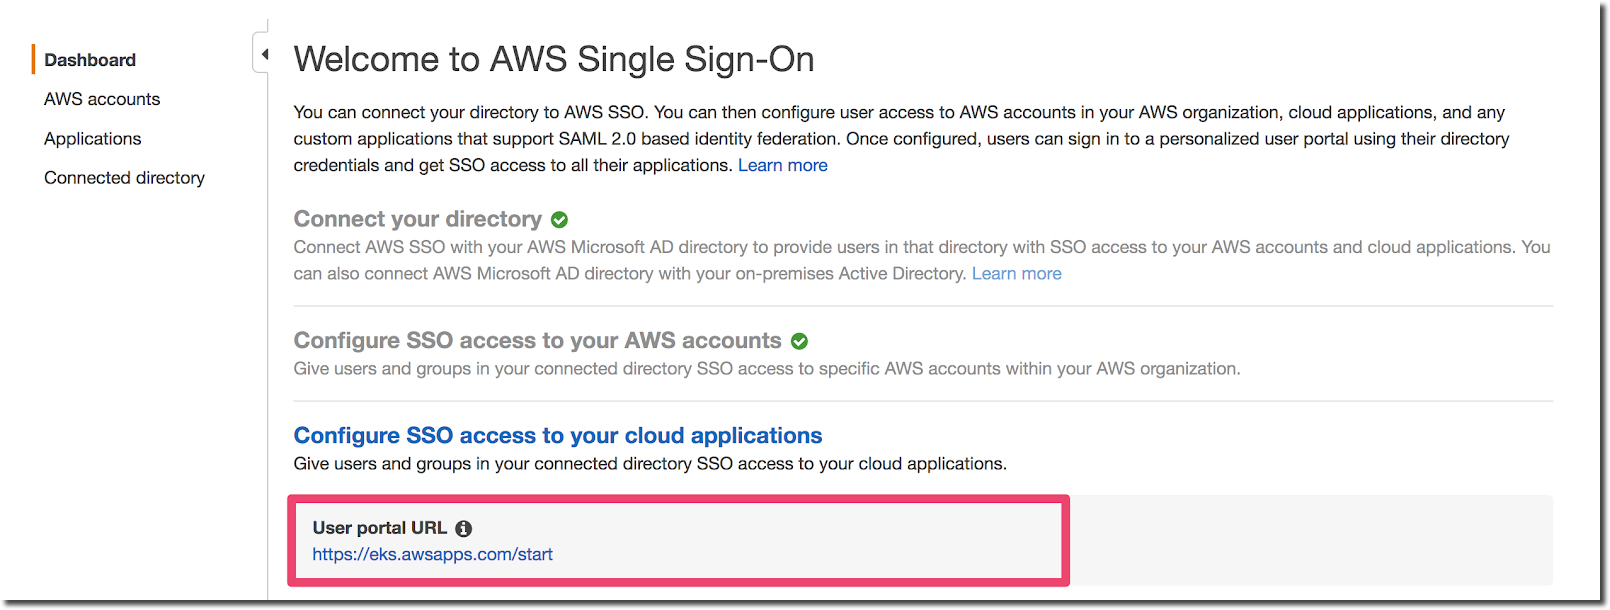 Welcome to AWS Single Sign-On page